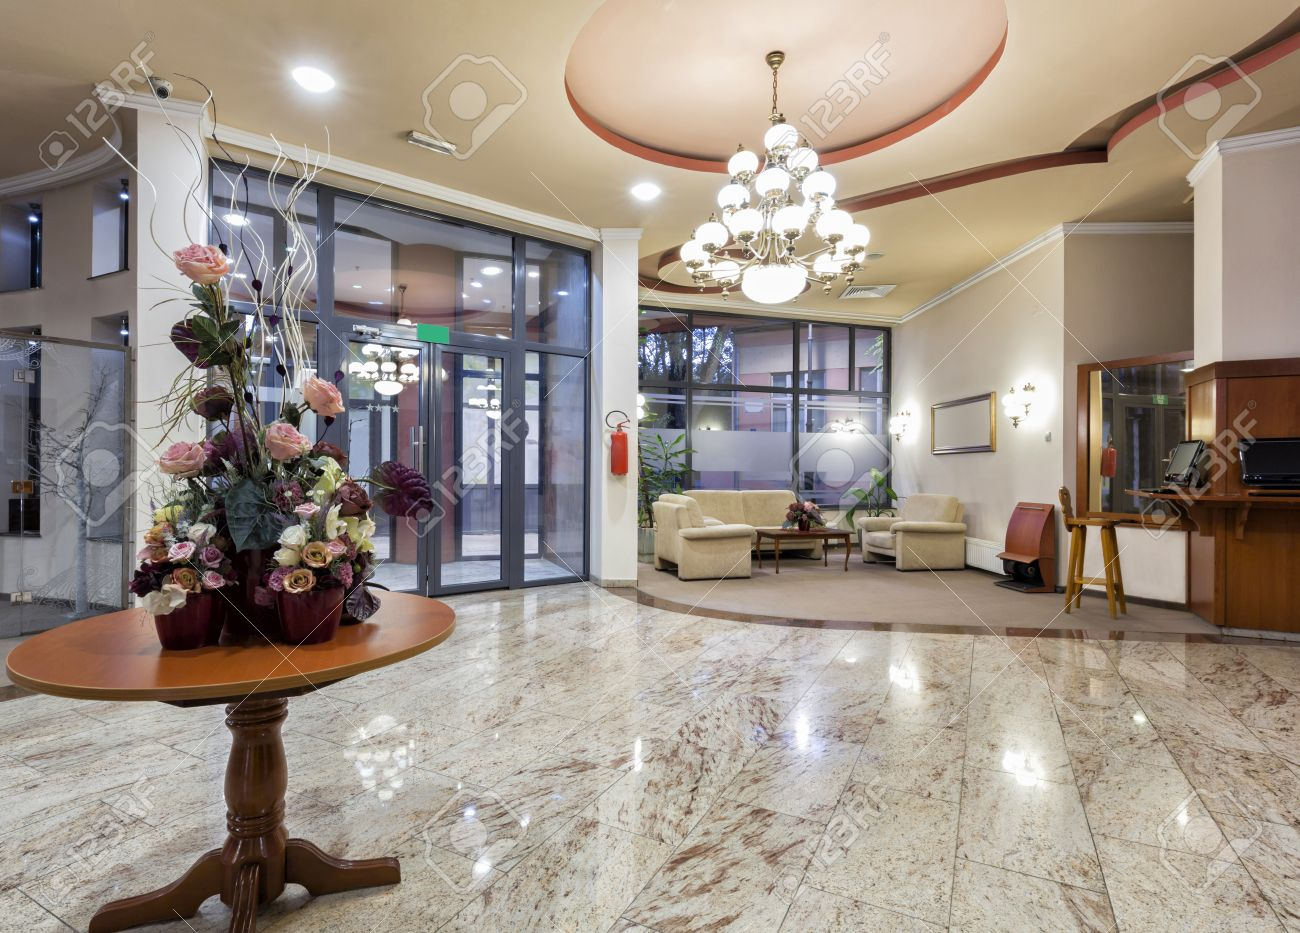 Modern Hotel Lobby modern hotel lobby stock photo, picture and royalty free image